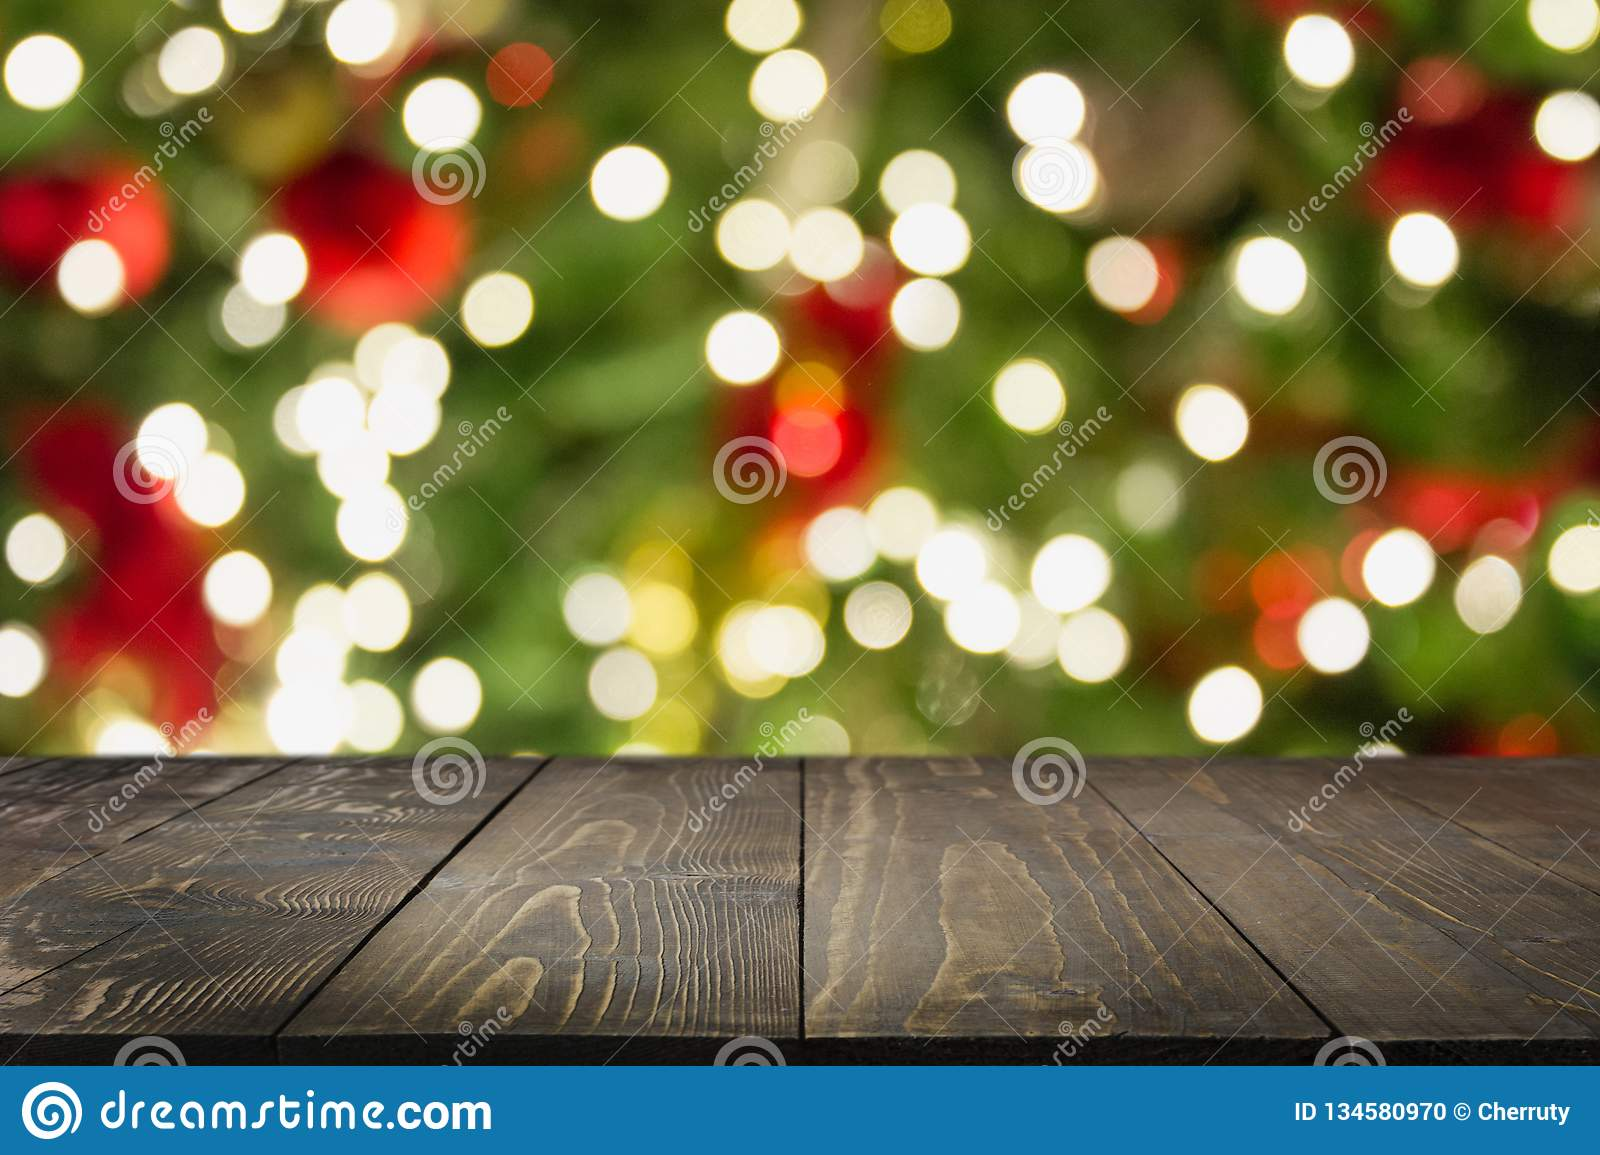 Christmas Tree Display Board.Wooden Dark Tabletop And Blurred Christmas Tree Bokeh Xmas